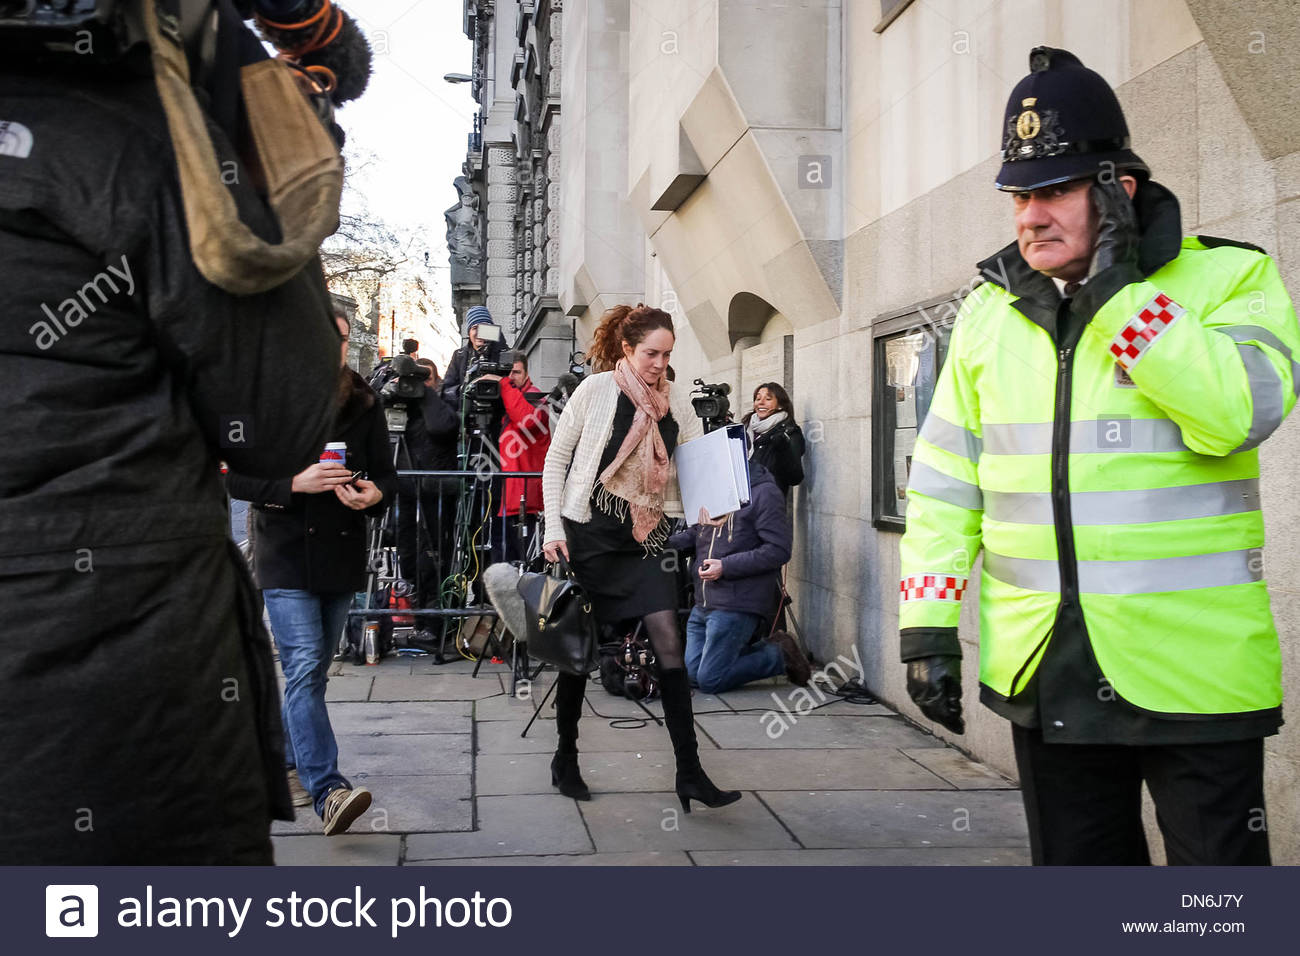 Rebekah Brooks arrives at Old Bailey court, London to continue trial arising from the News International phone hacking scandal. - Stock Image